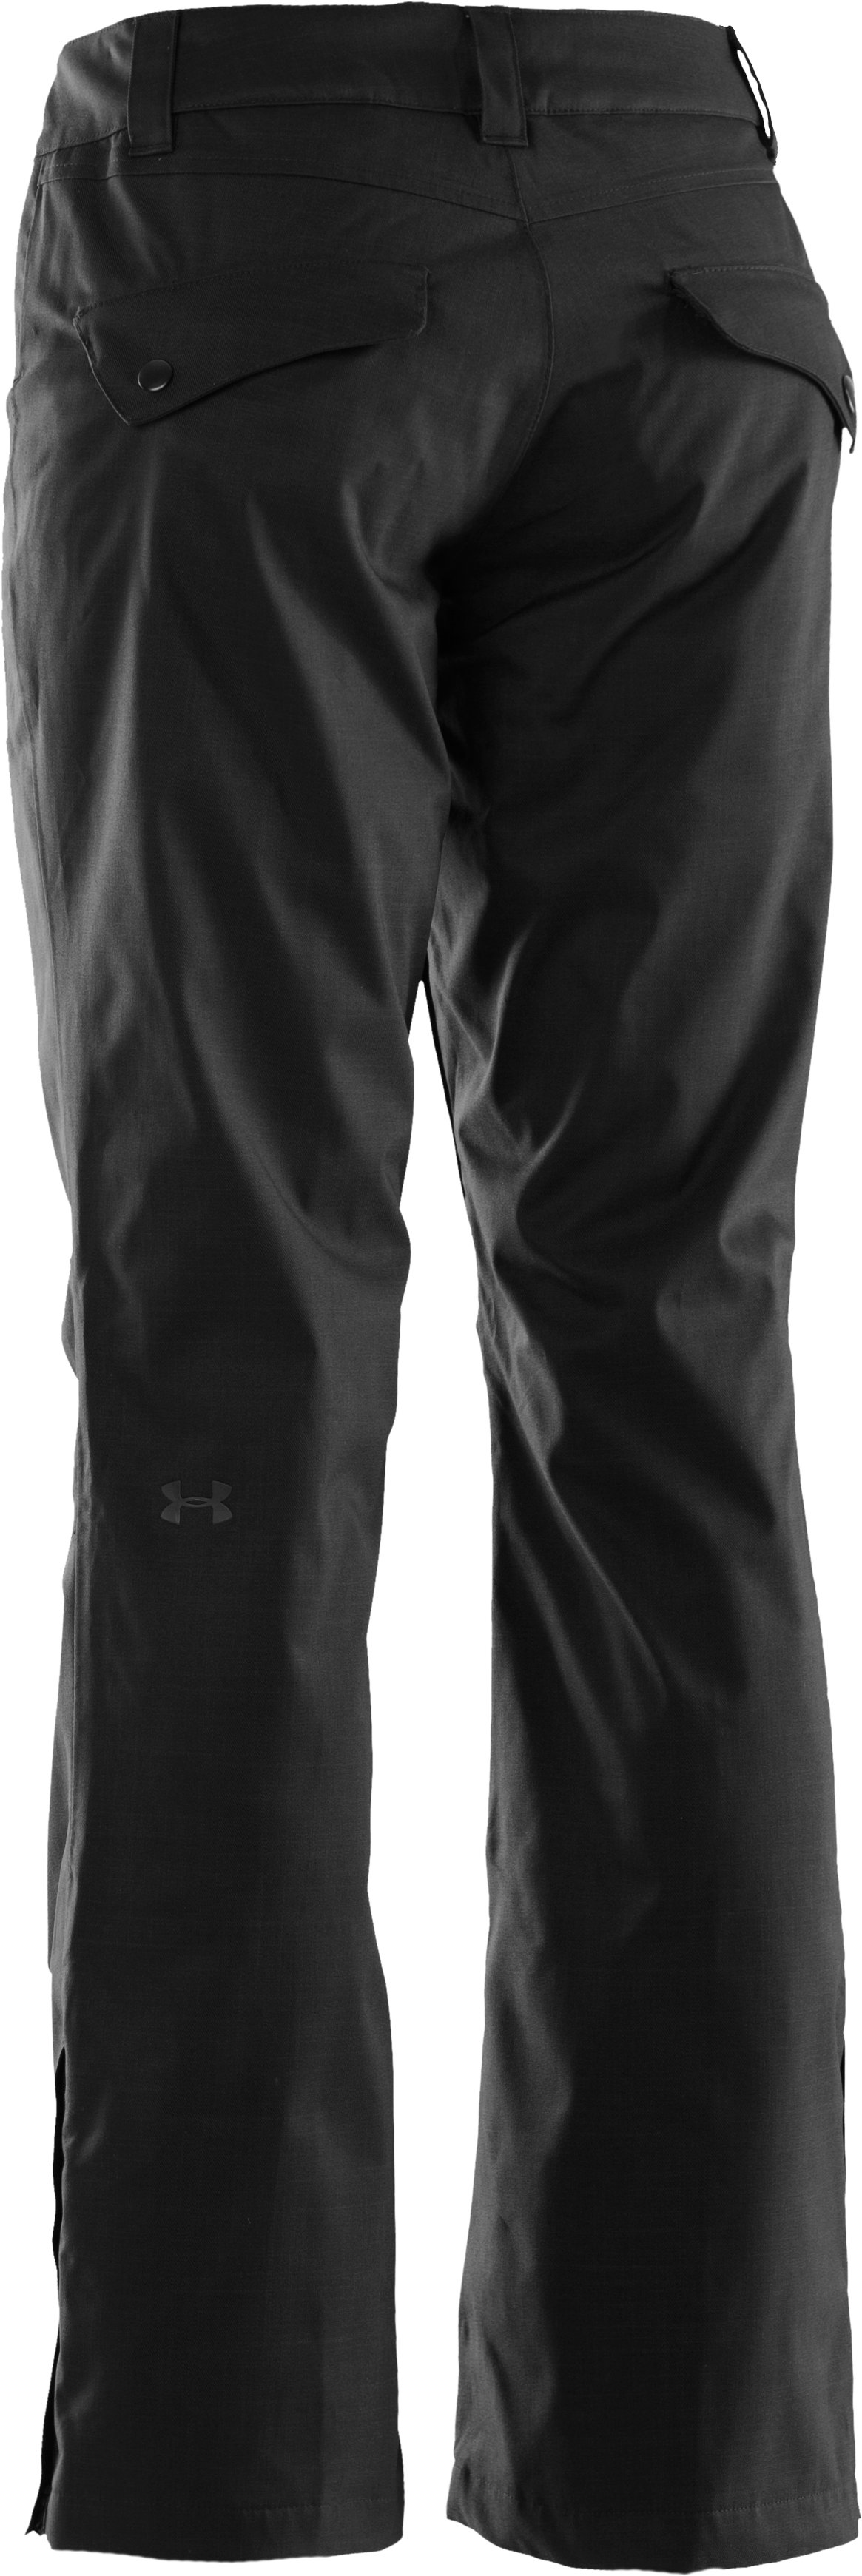 Women's ColdGear® Infrared Wendy Pant, Black , undefined